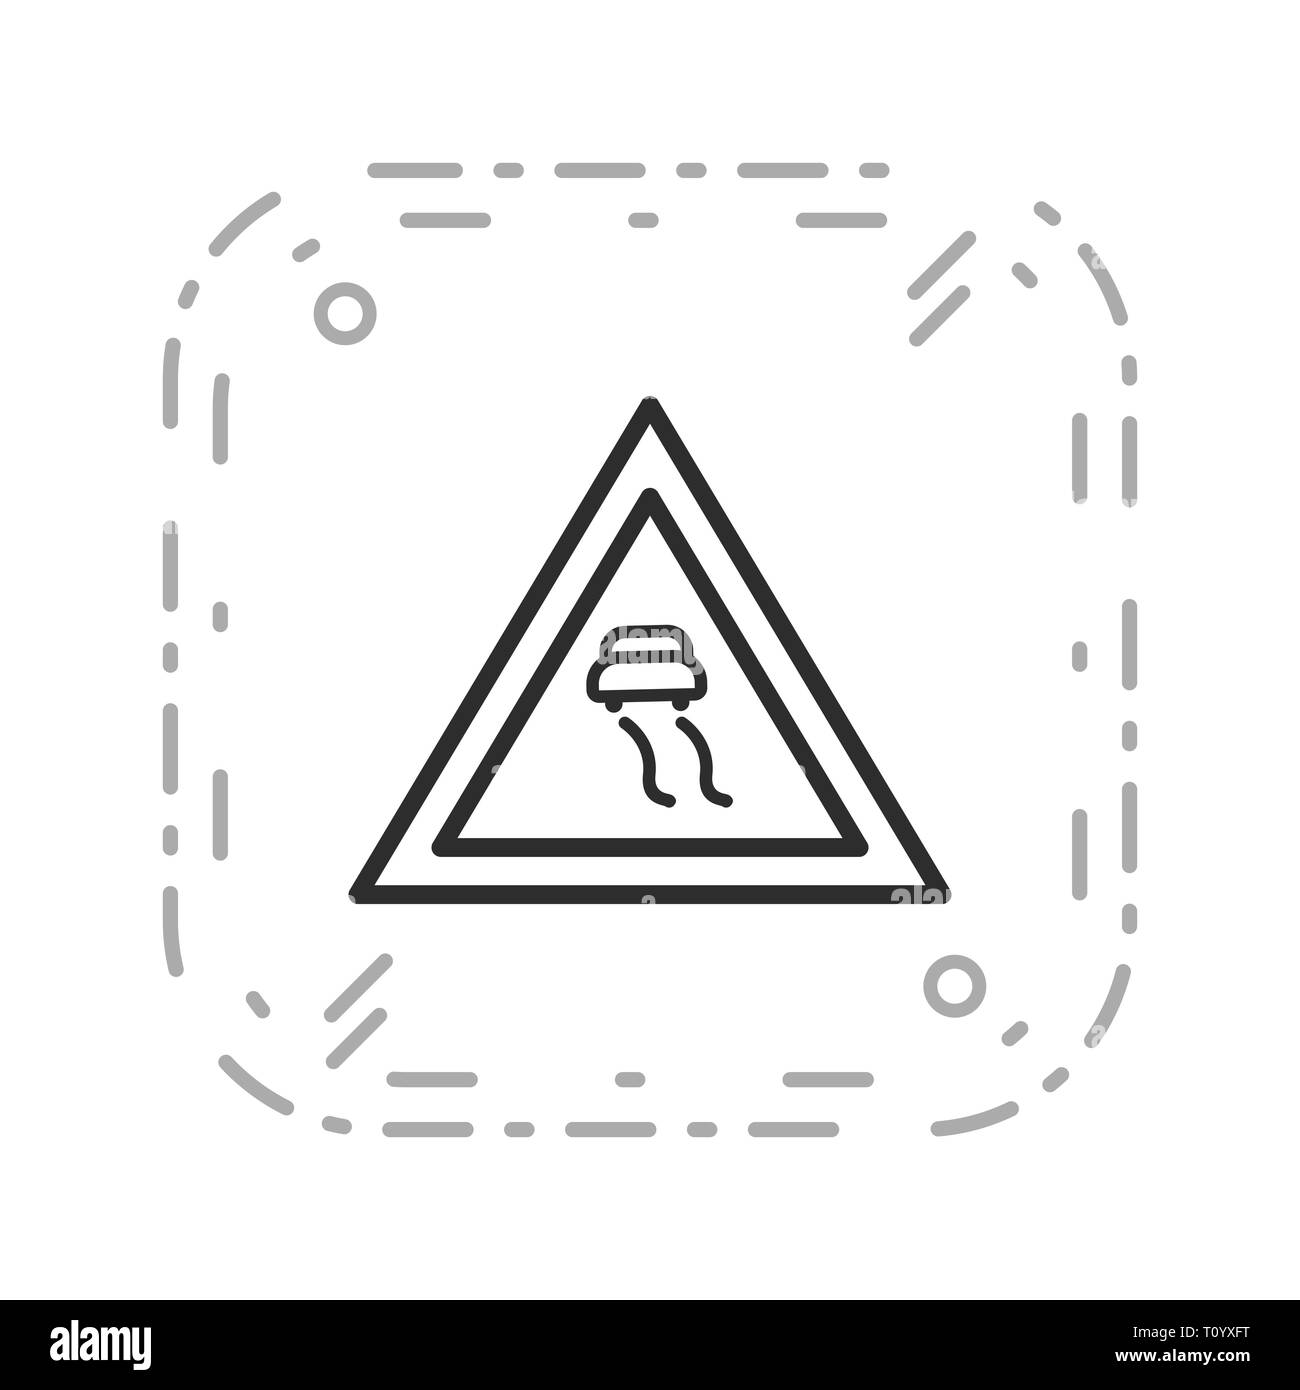 Illustration  Slippery roads Icon - Stock Image